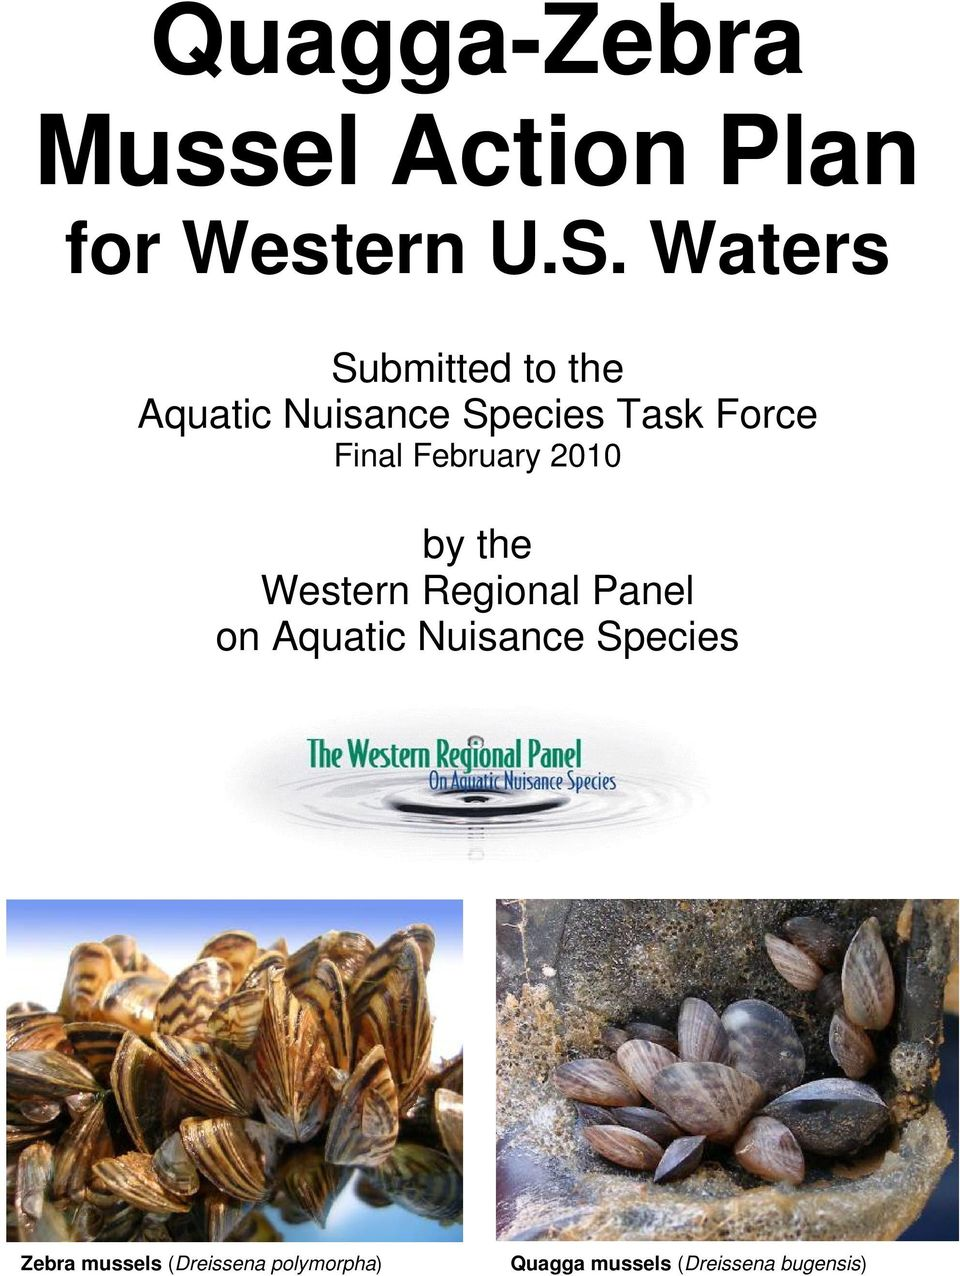 Final February 2010 by the Western Regional Panel on Aquatic